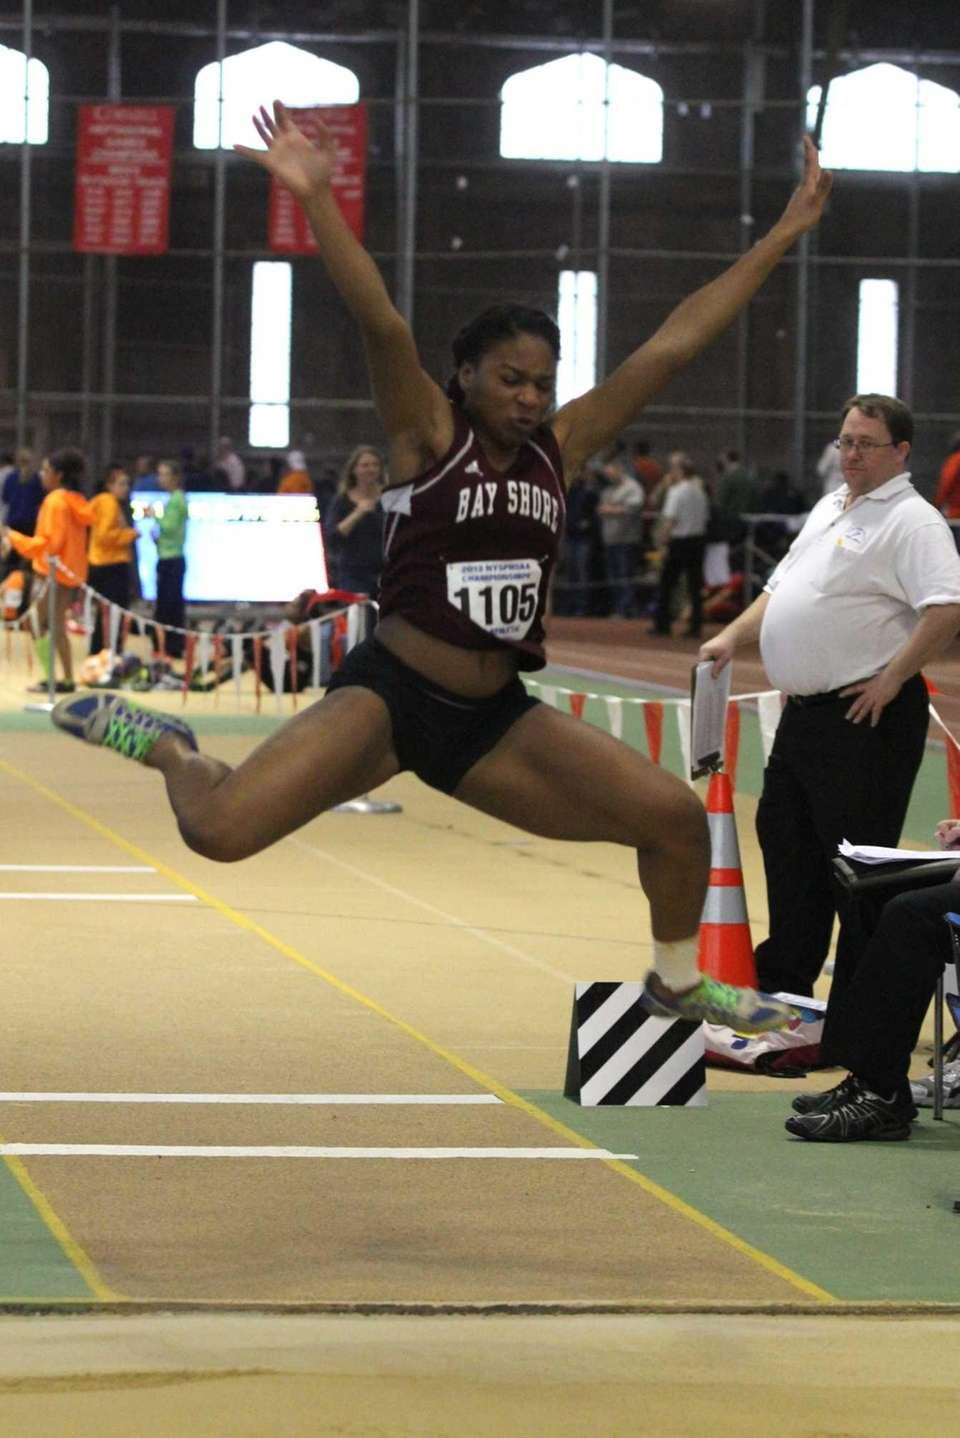 Bay Shore's Anisa Toppin leaps during the second